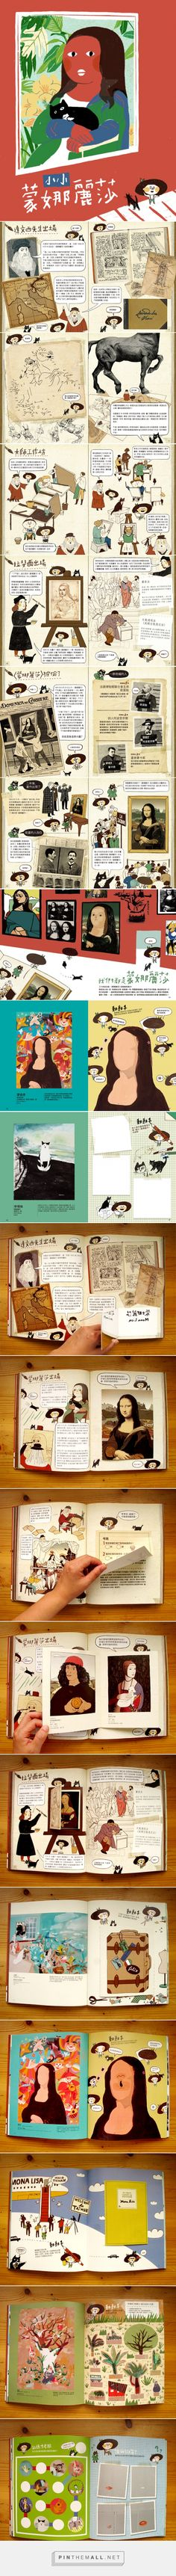 The Little Monalisa / Illustration and Design on Behance - Chia-Chi Yu